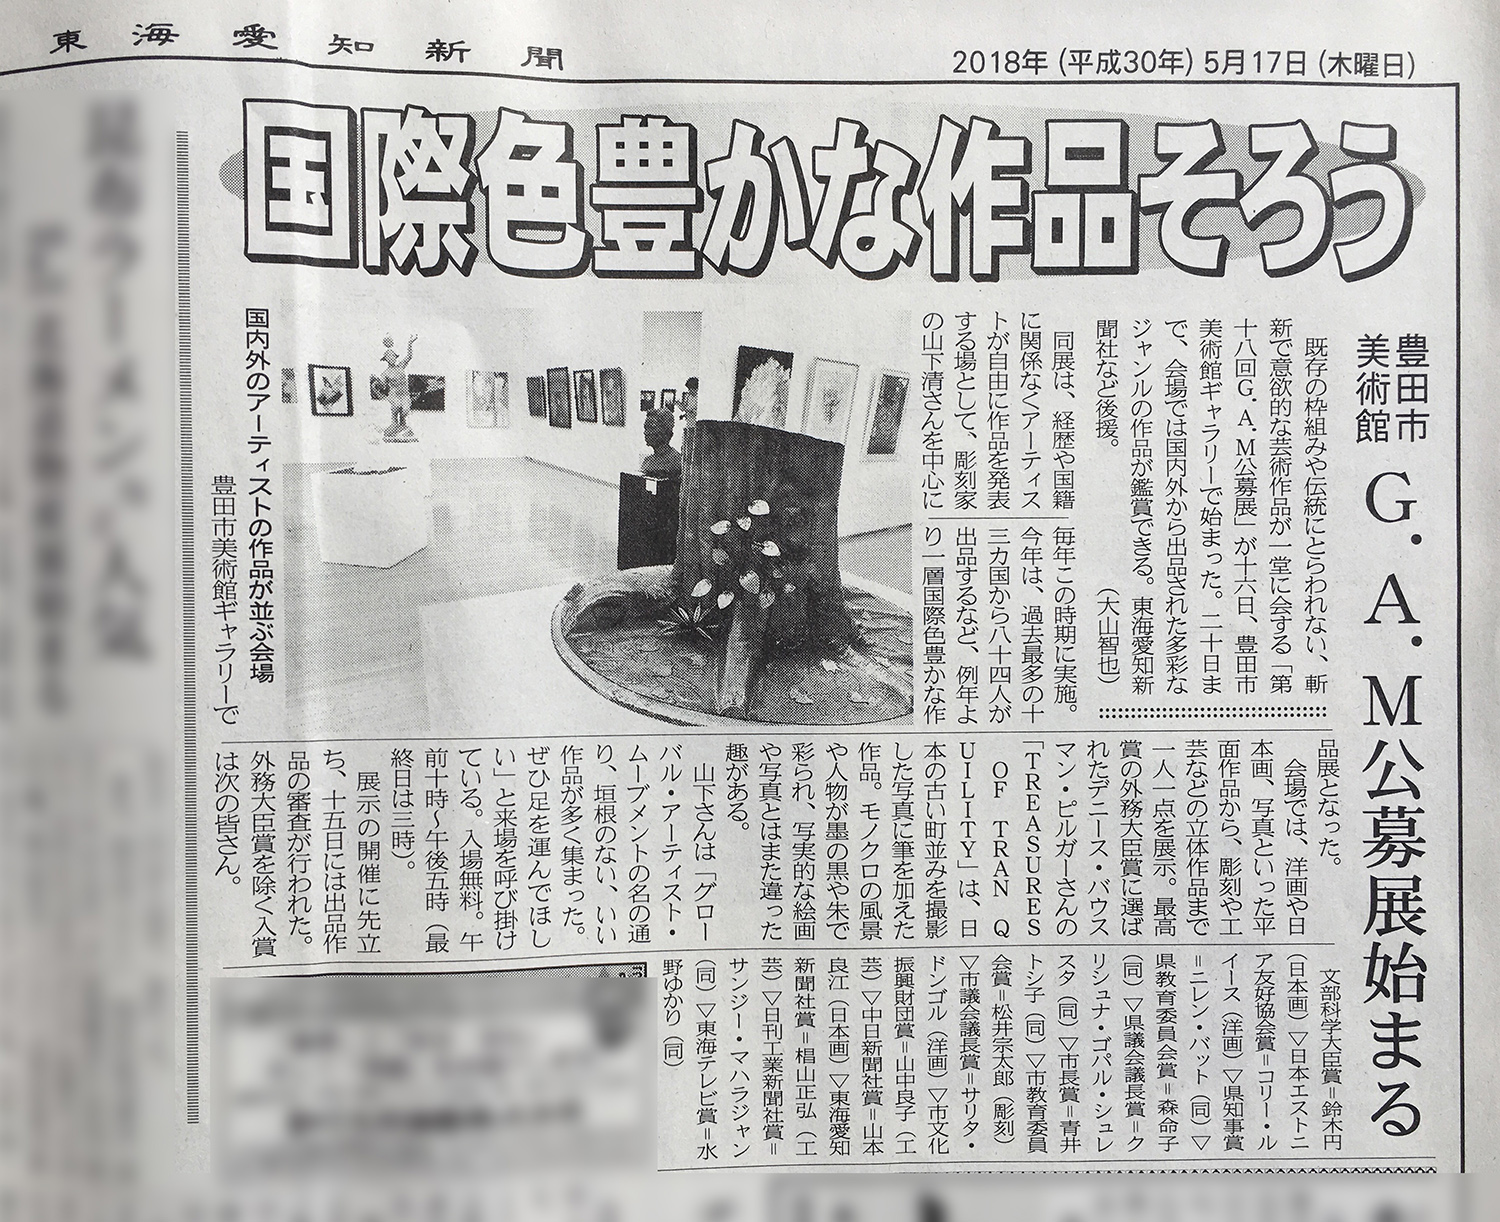 tokai-aichi-newspaper-may-17-2018.jpg